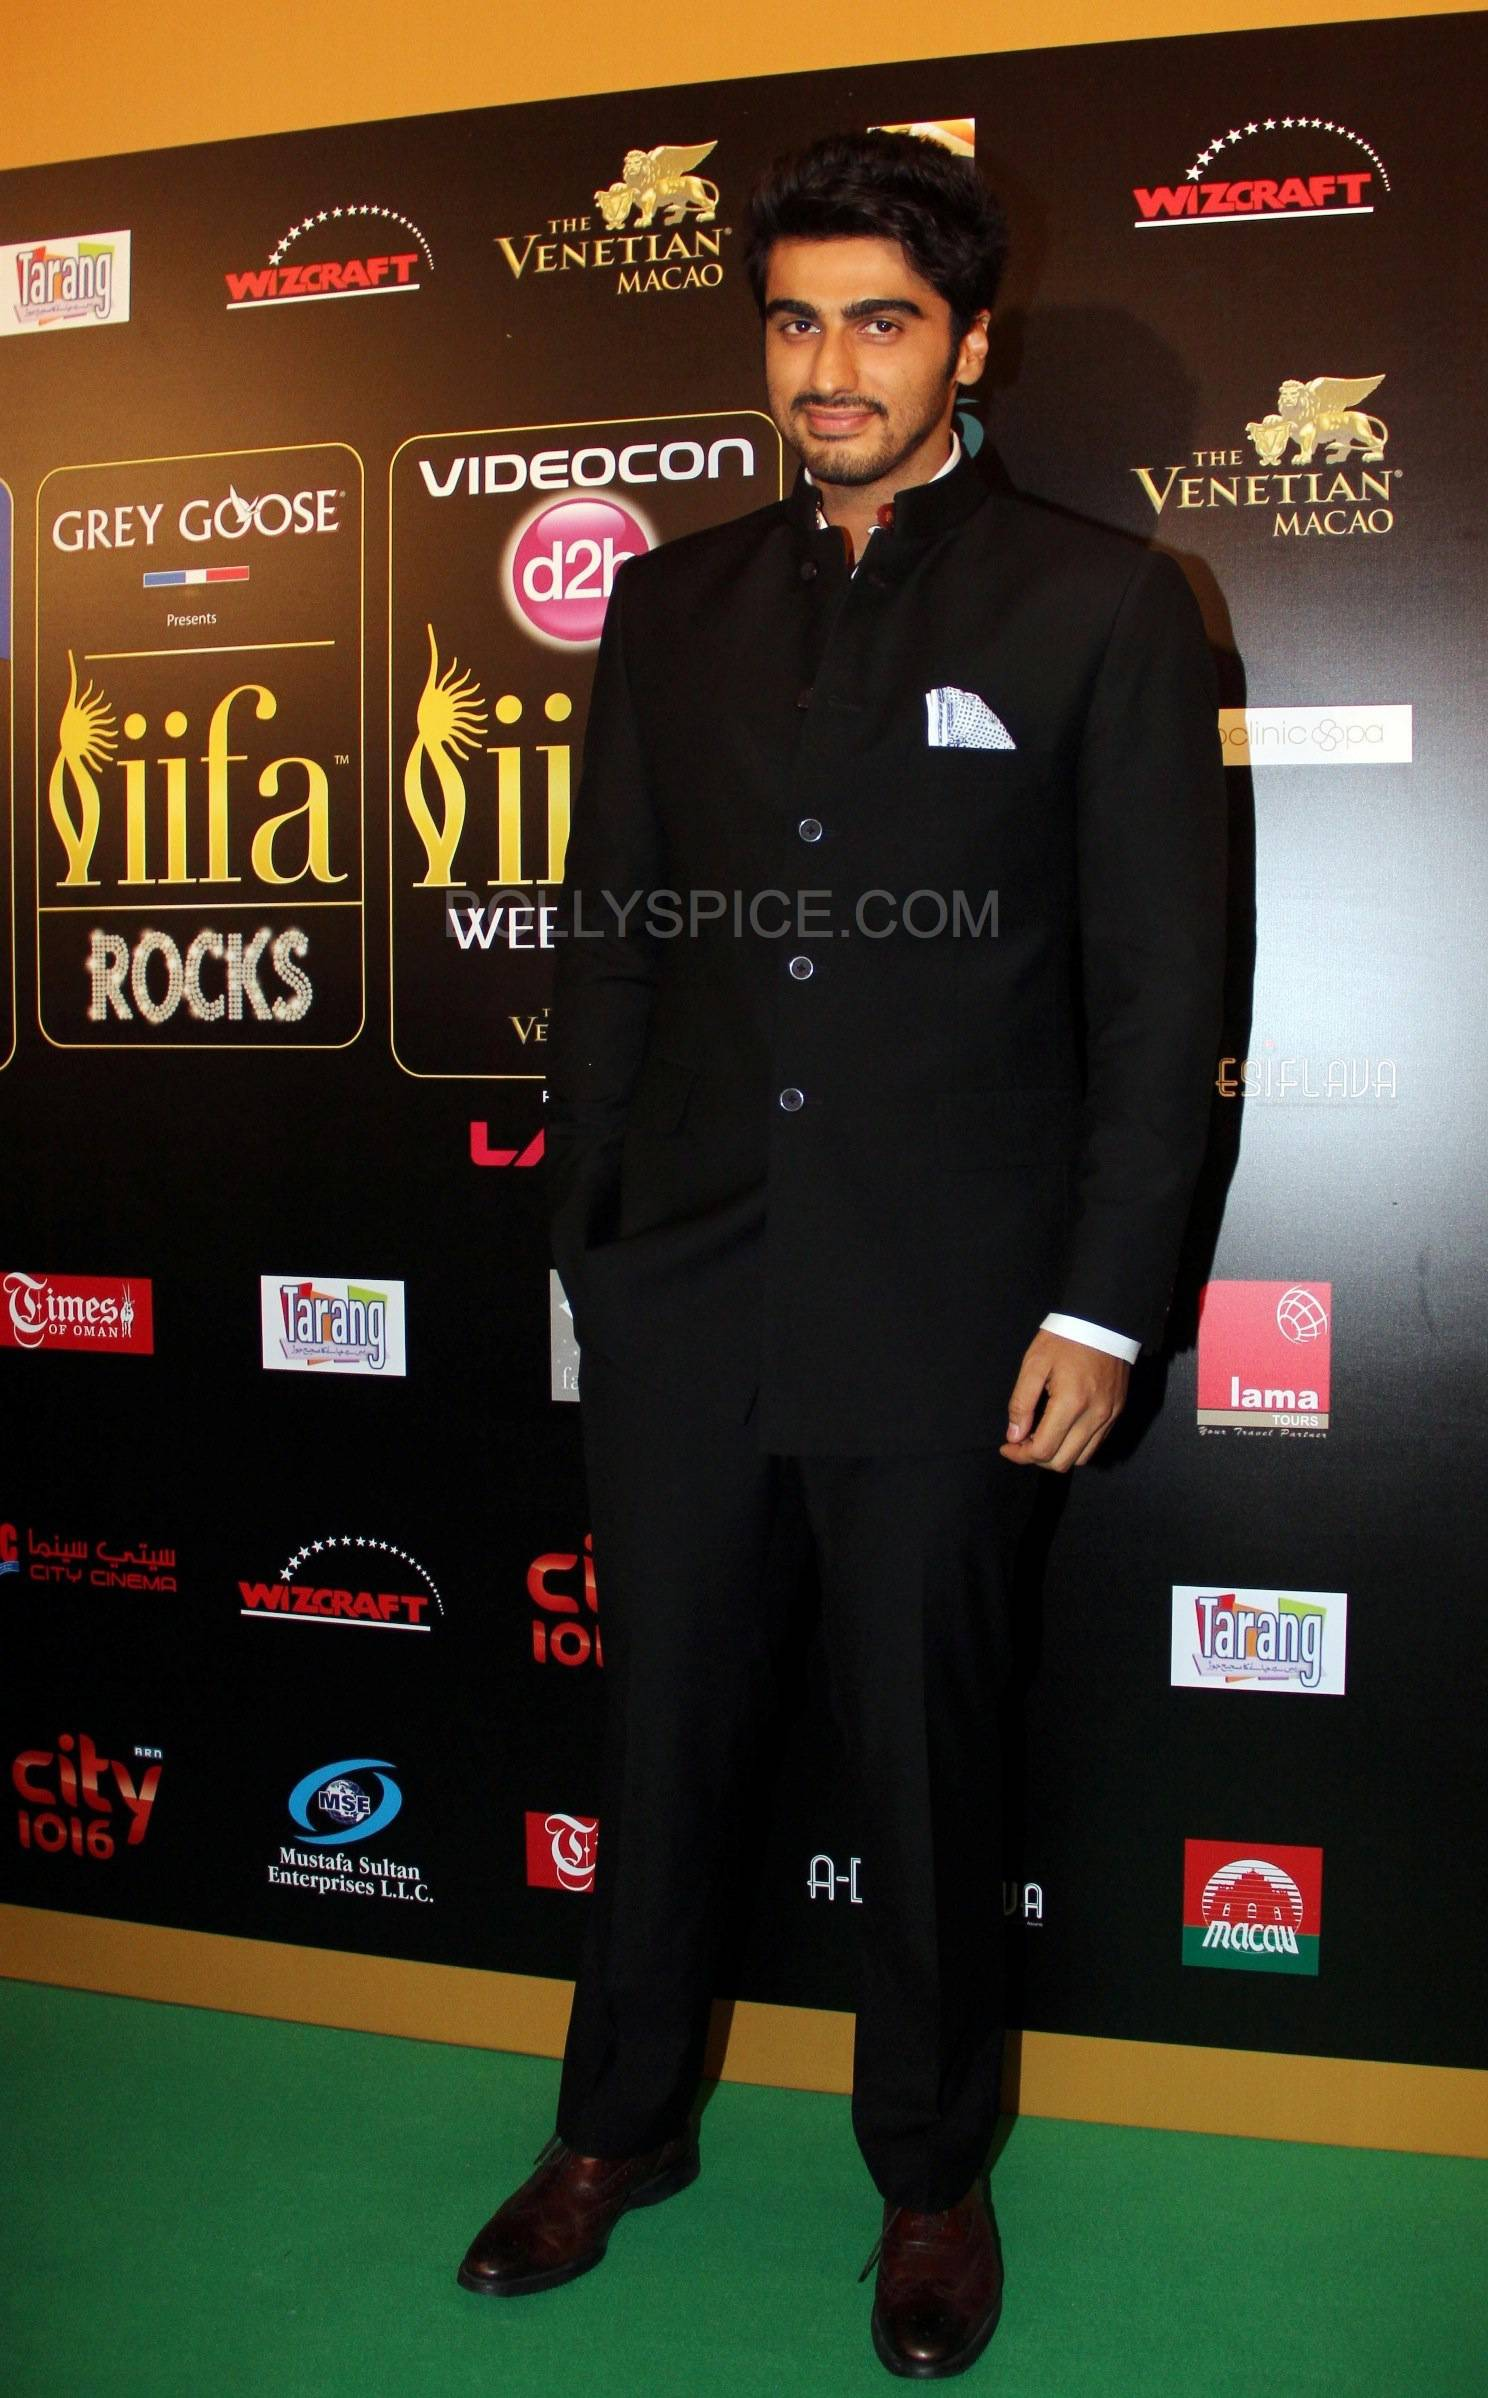 Arjun Kapoor at IIFA Rocks Green carpet More from IIFA Rocks including winners and more Green Carpet pics! Pics added!